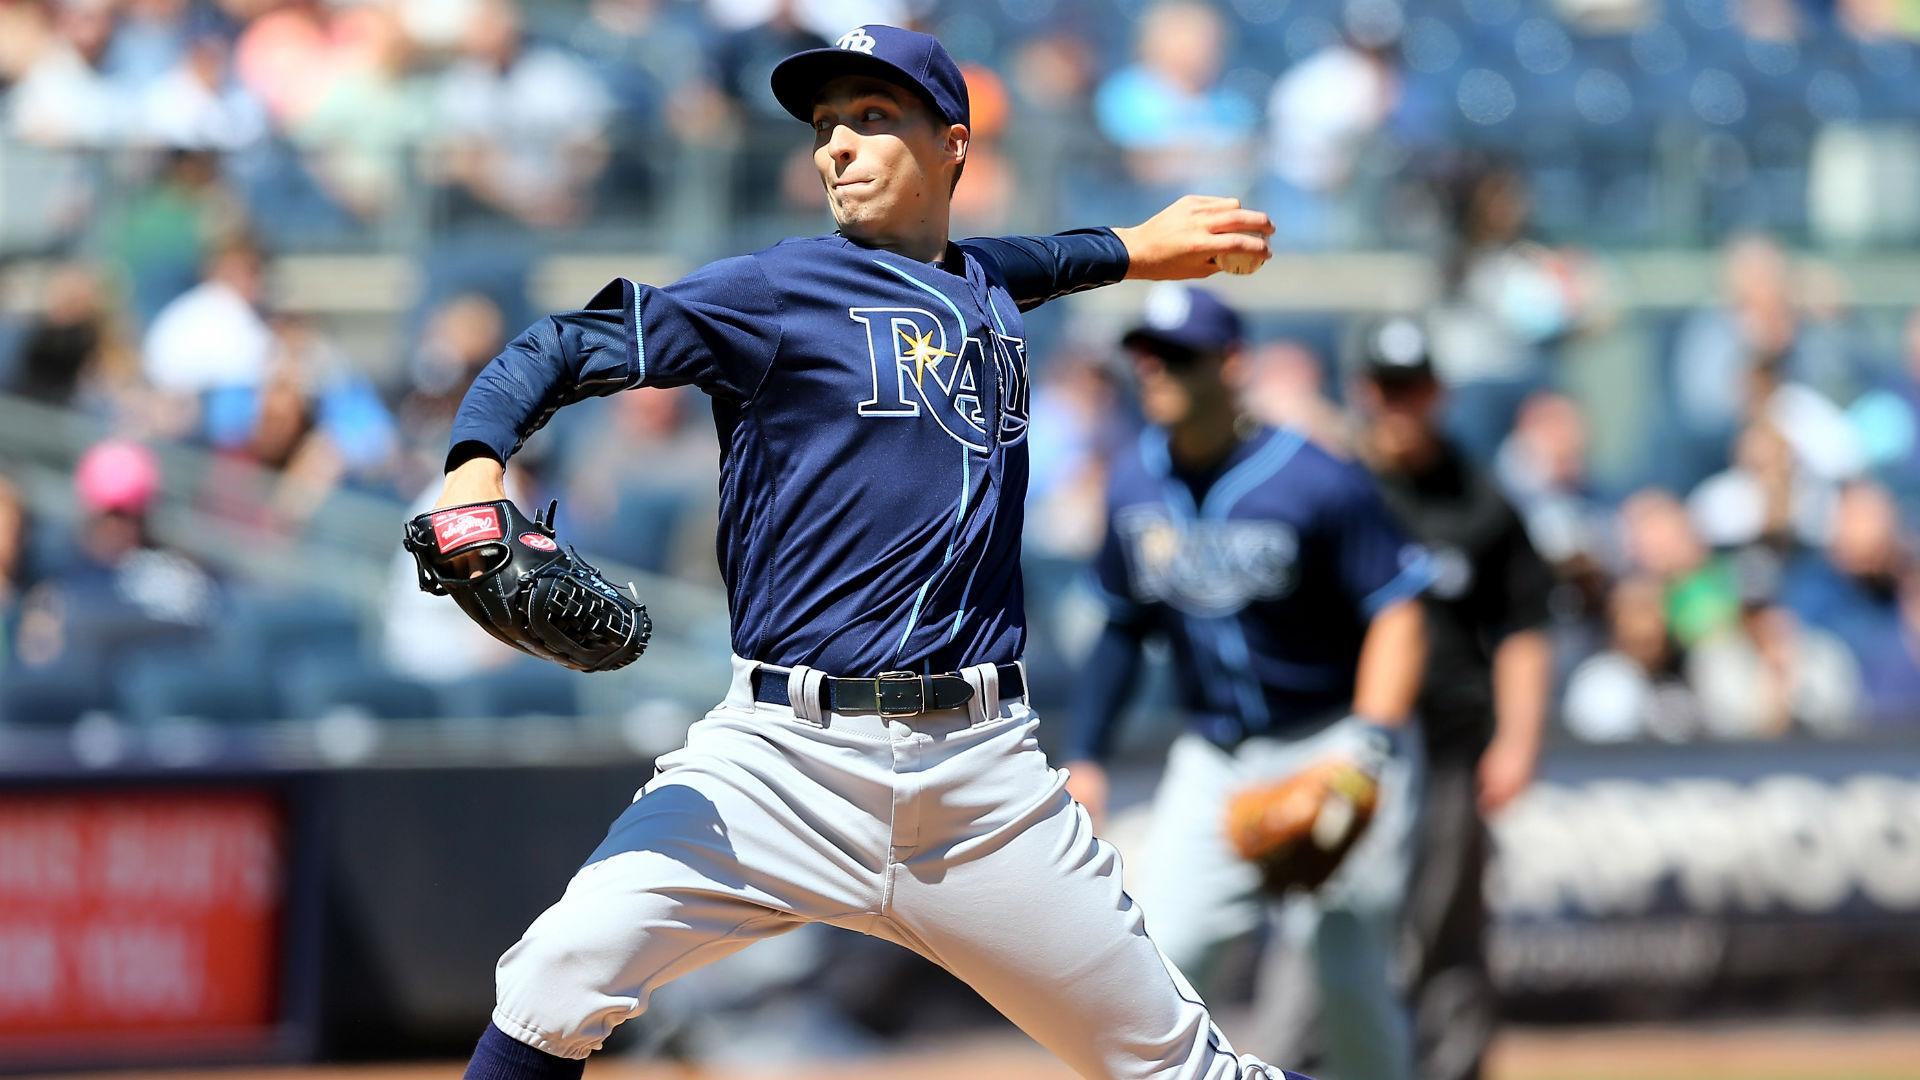 Blake Snell Scouting Report: Rays rookie shows why he's a top